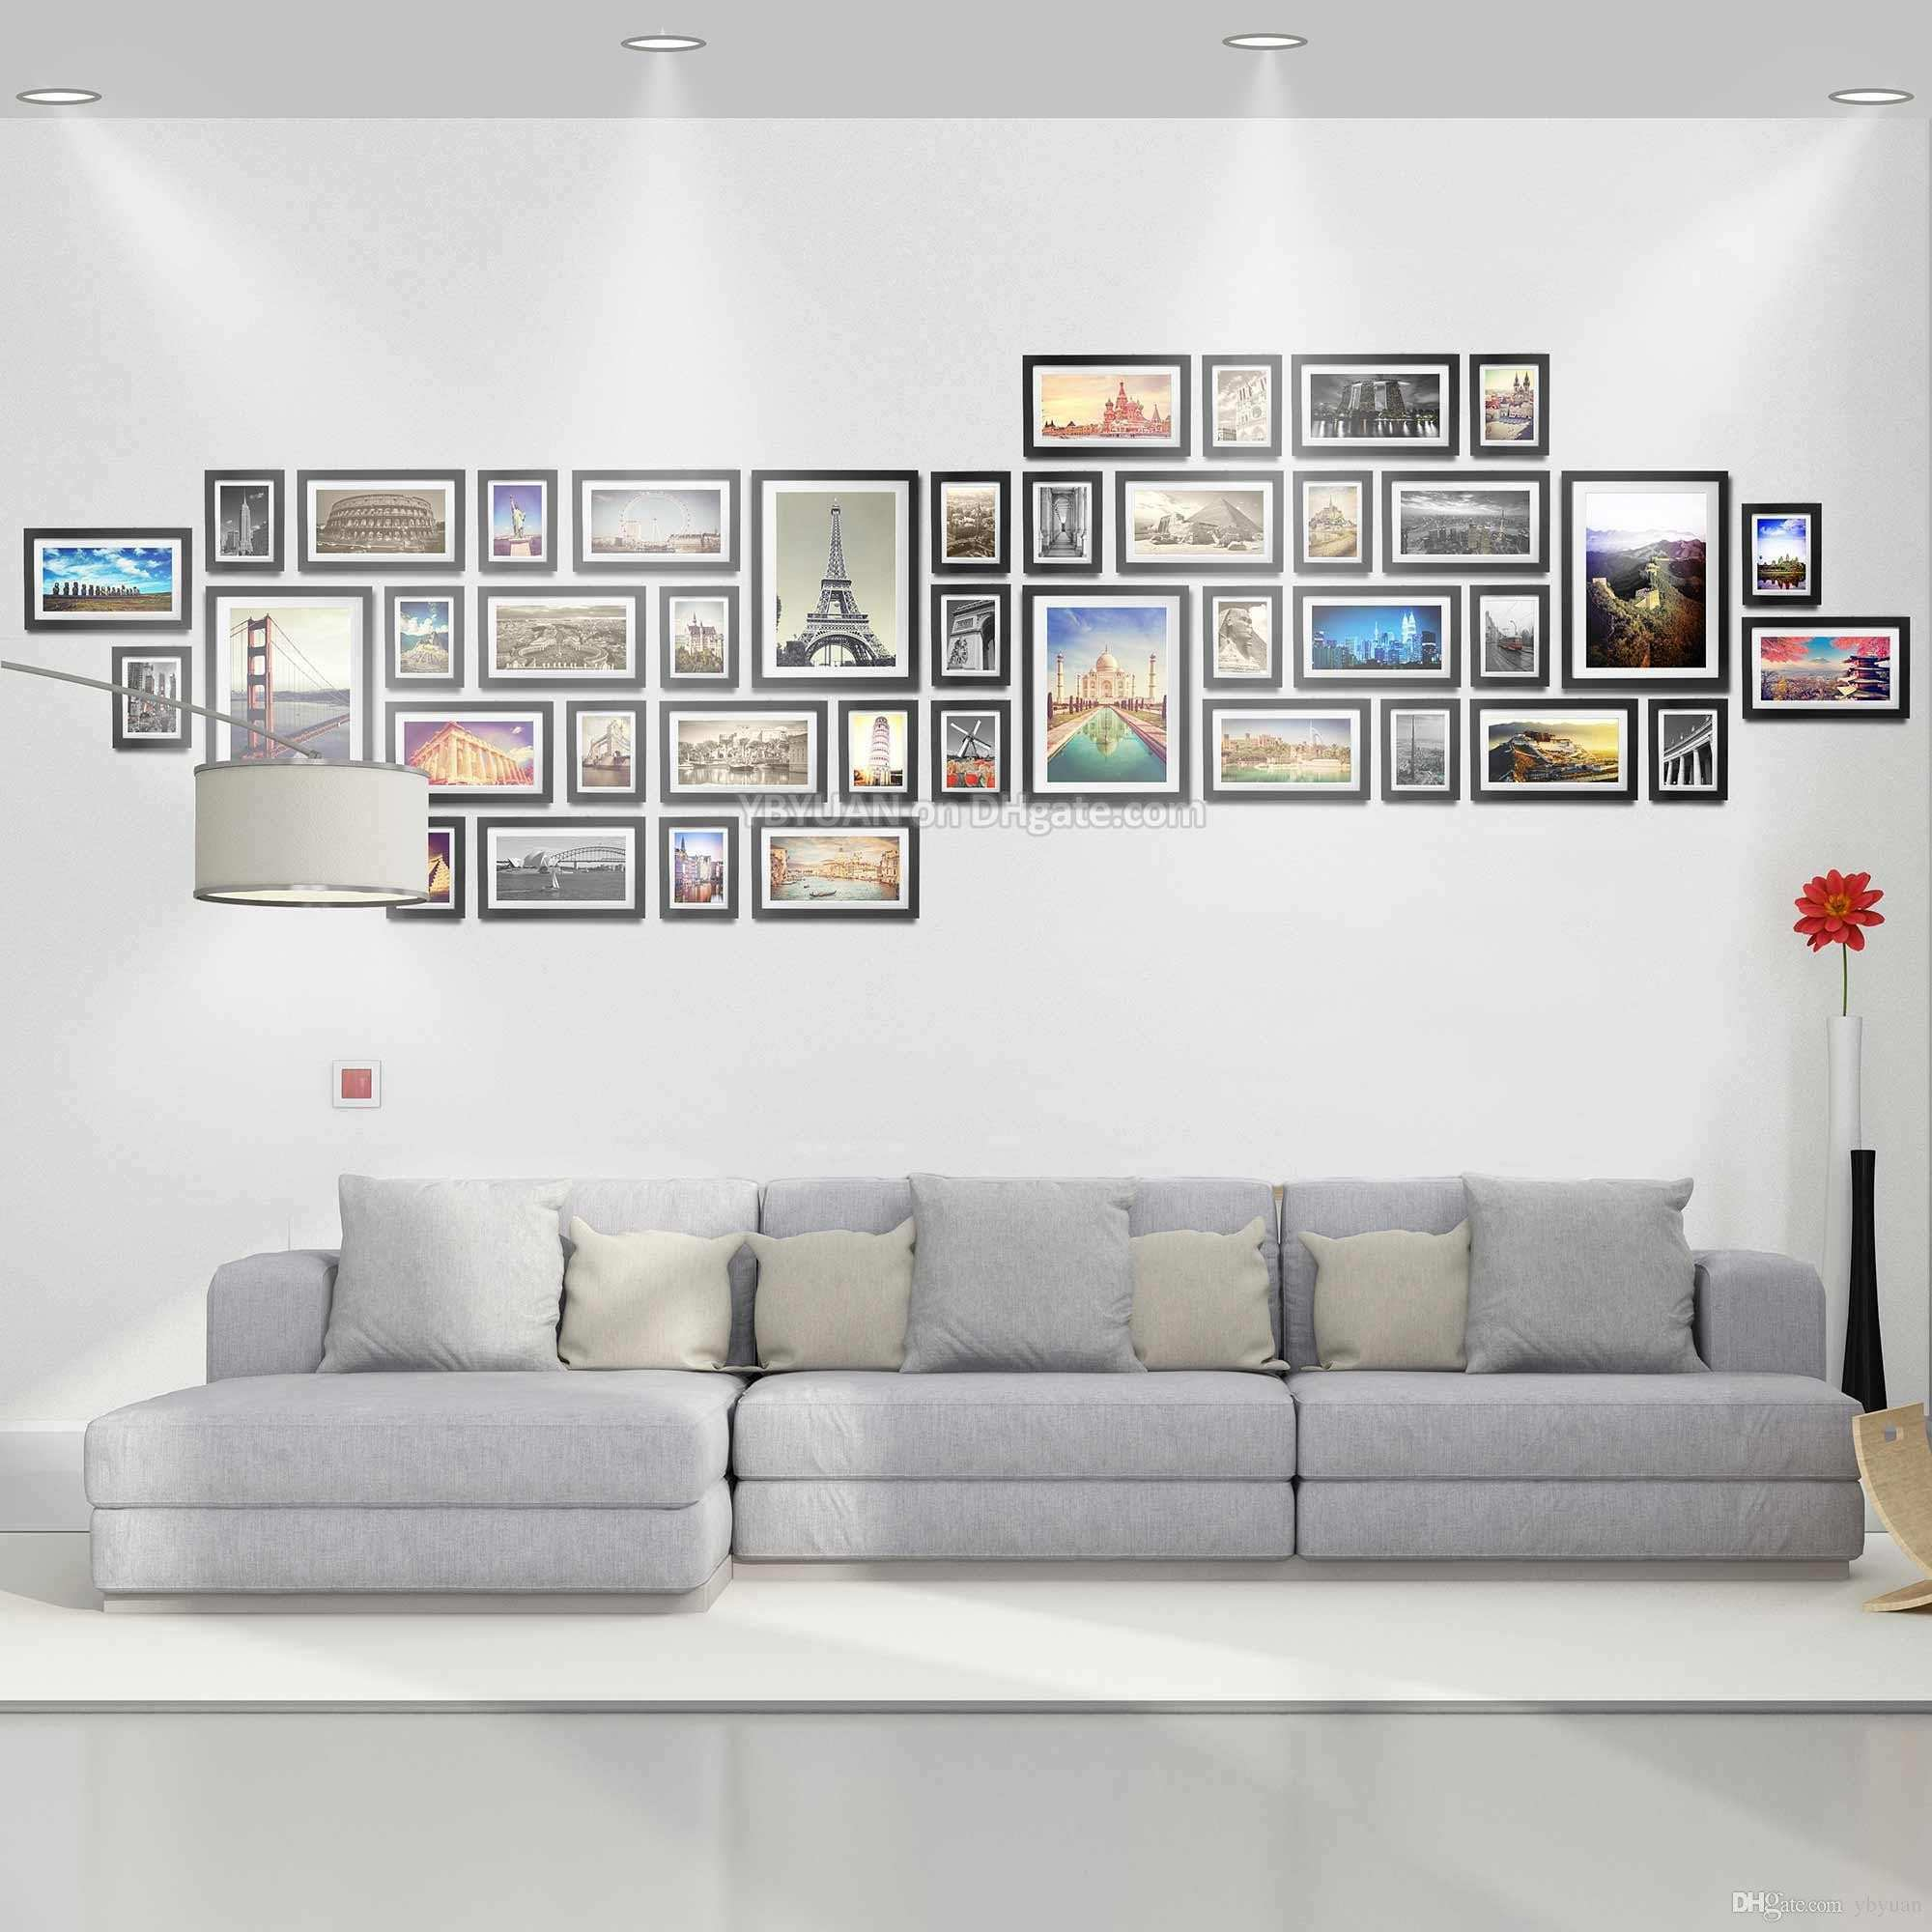 Extra Wood Frames Gallery Wall Modern Style Flat